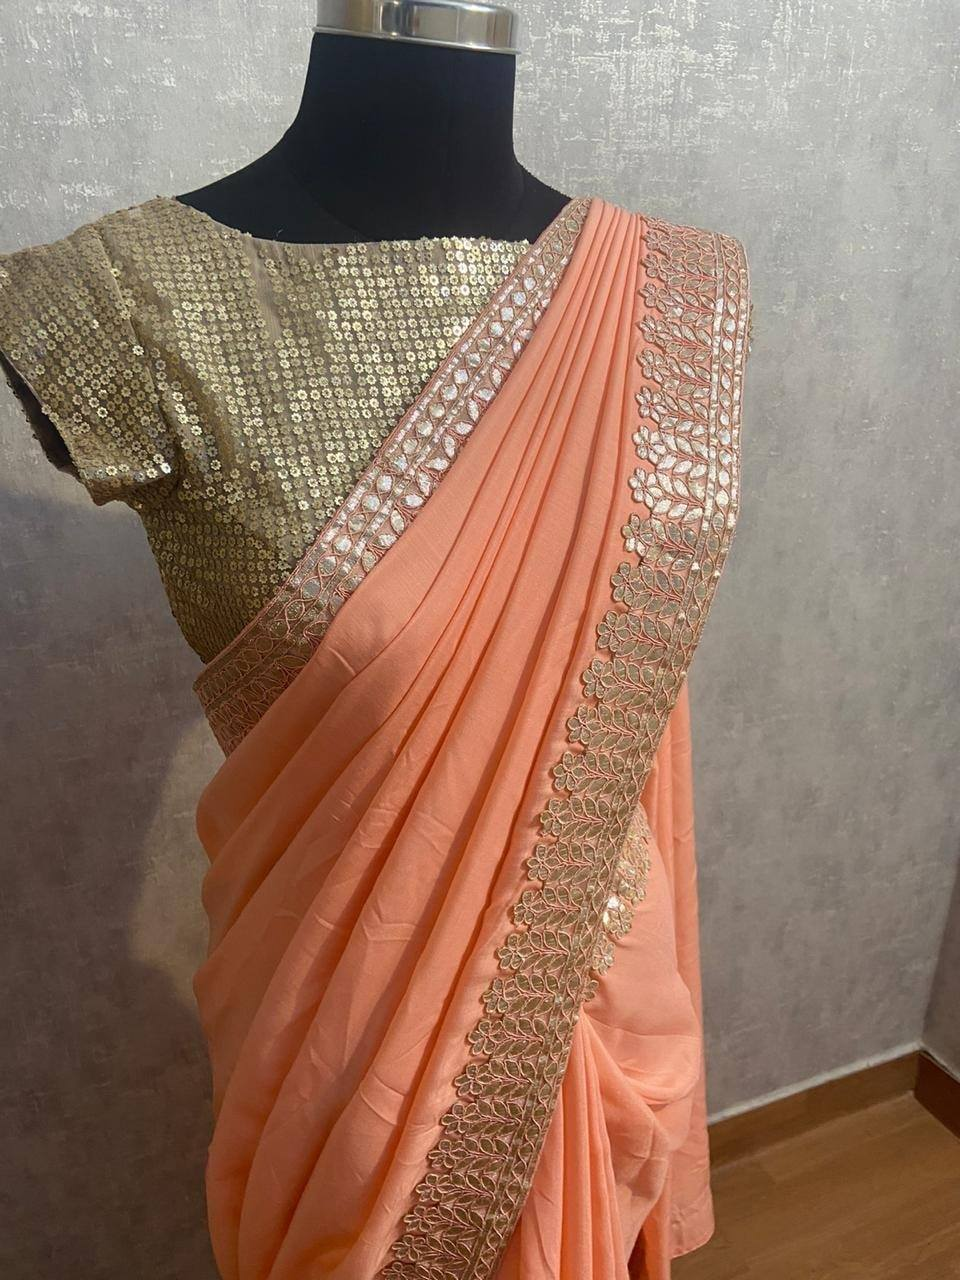 Peach saree. . Peach mul mul saree finished with gotta patti  worked border.. . . For orders and queries pls whatsapp us on 9952093562 | girlish saree | designer net saree | plain saree with blouse | 2020-10-31